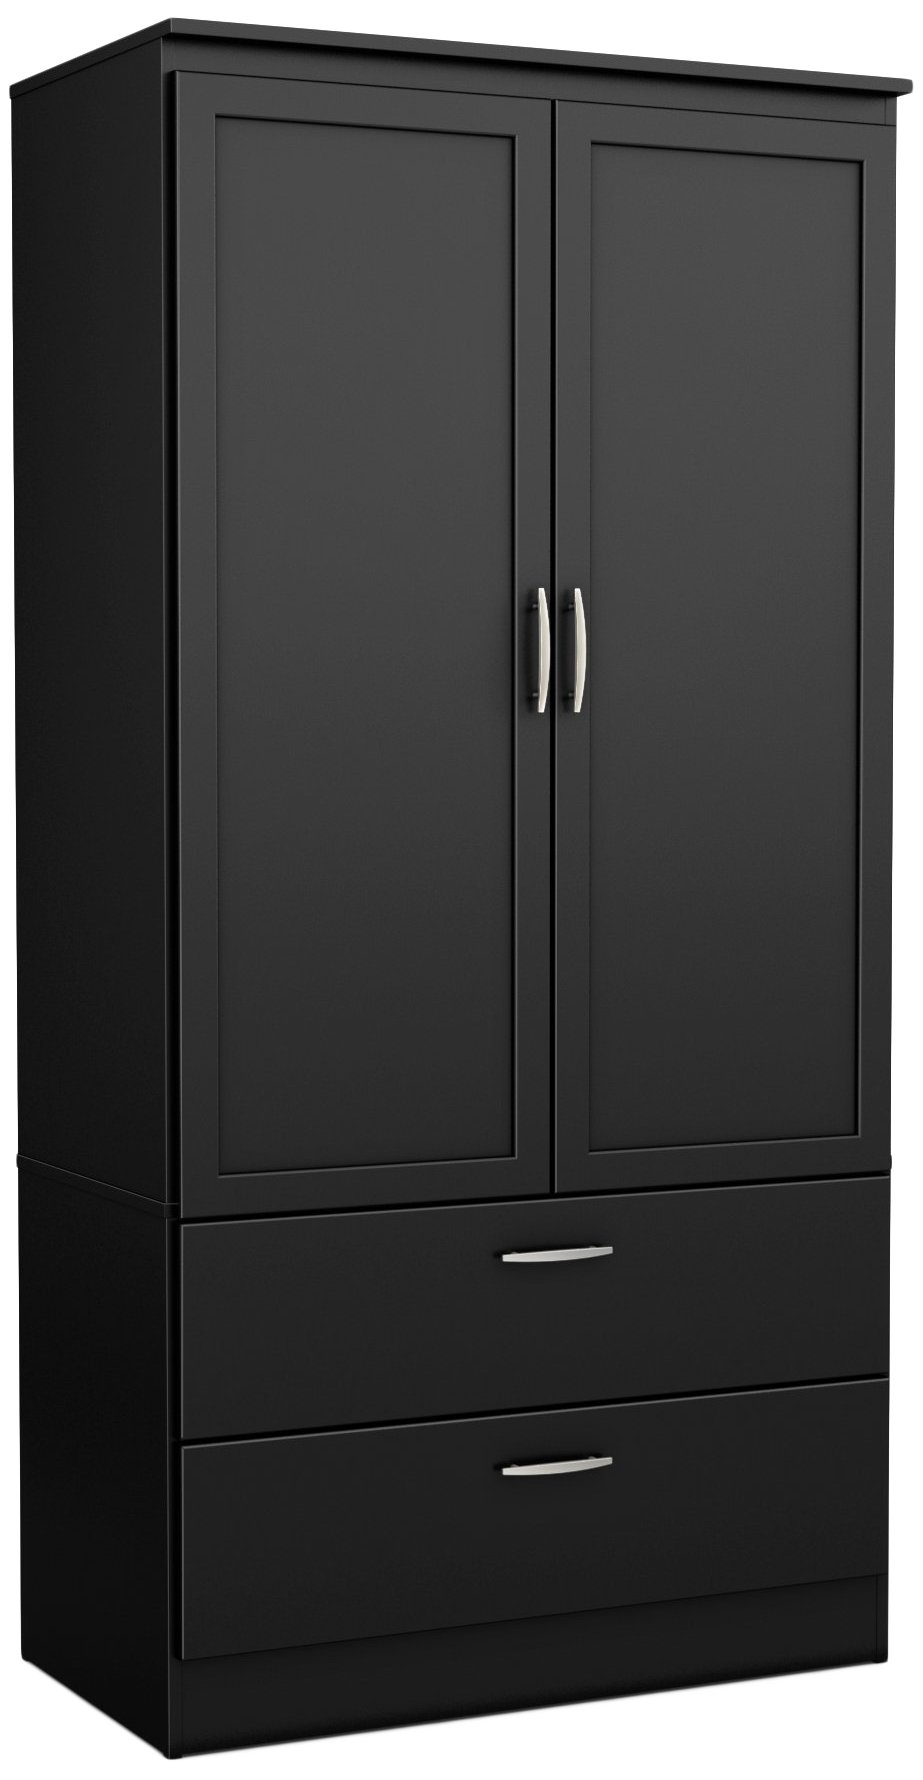 South Shore 5370038 2-Door Wardrobe Armoire with Adjustable Shelves and Storage Drawers, Pure Black